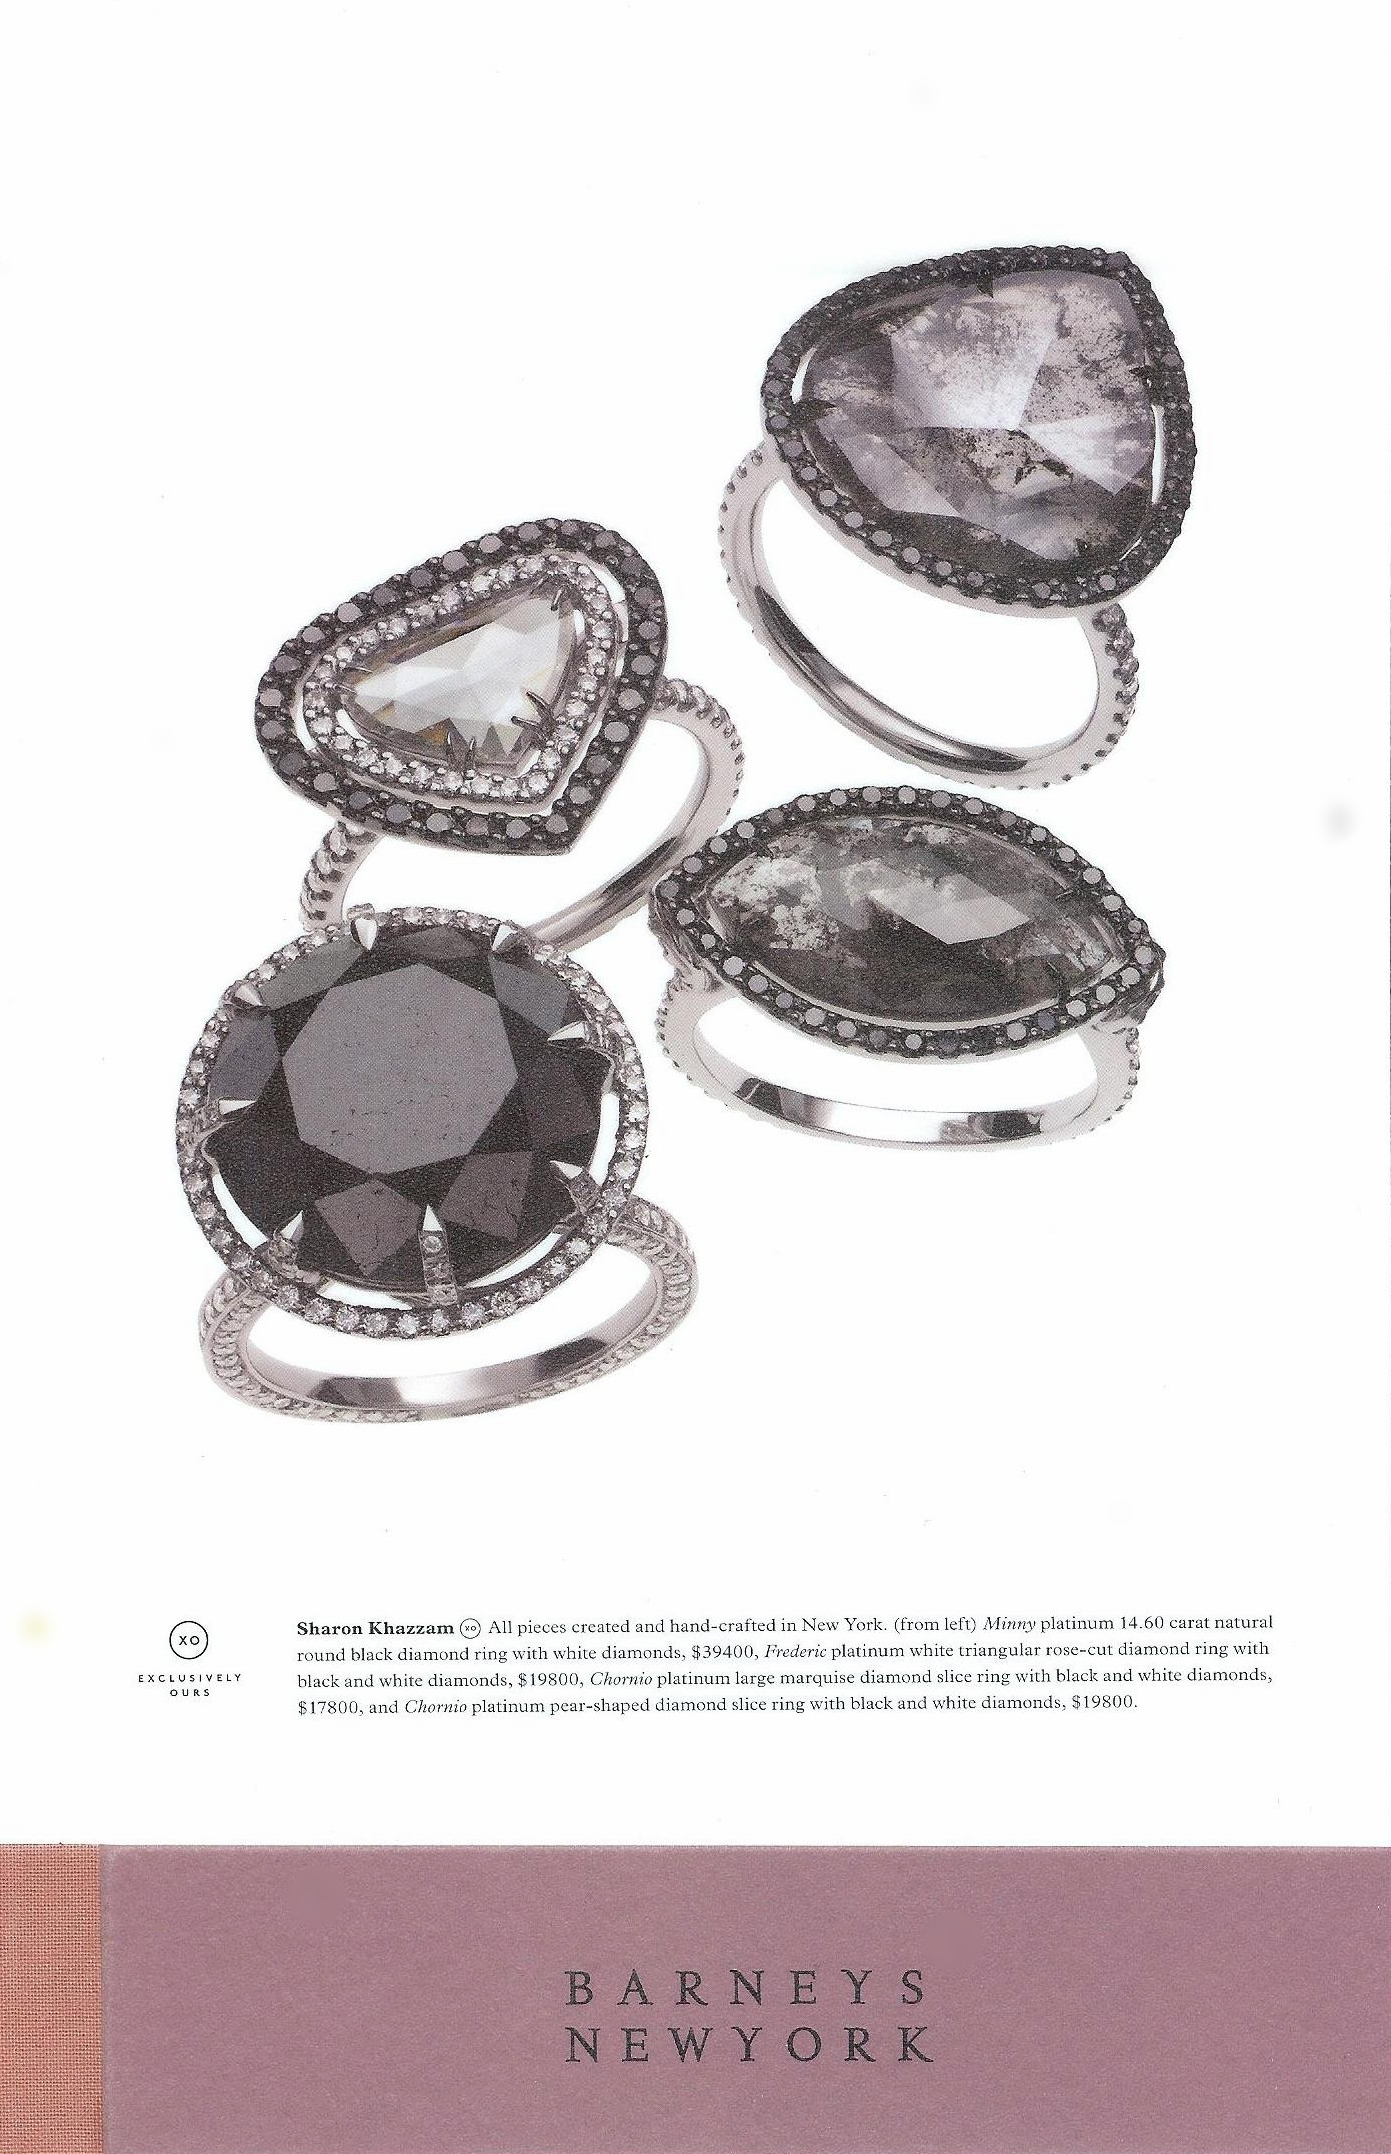 2013-Barneys Mailer- Diamond Rings.jpg